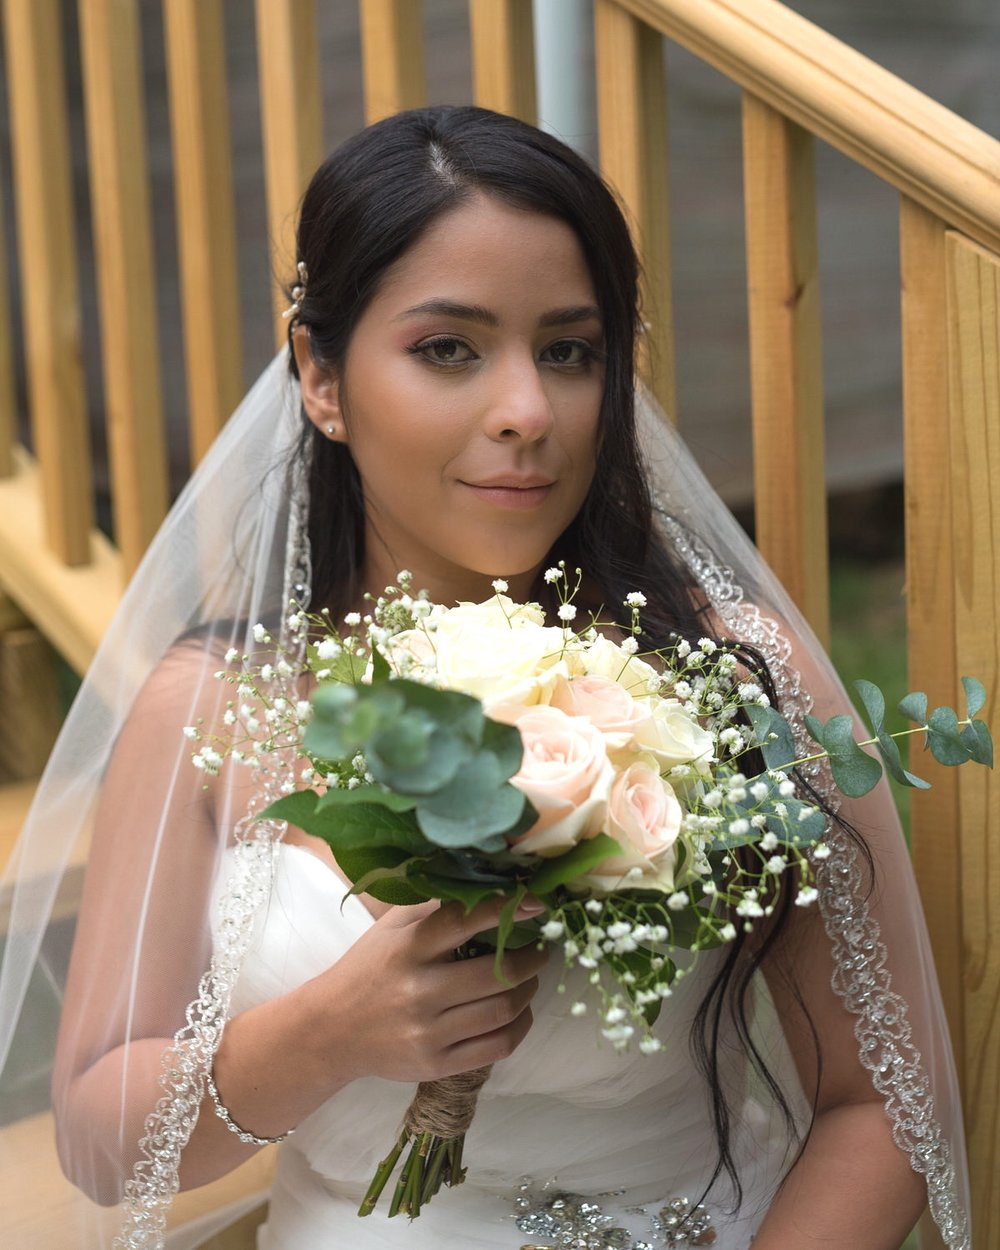 Kennesaw GA, Bride with bouquet of flowers